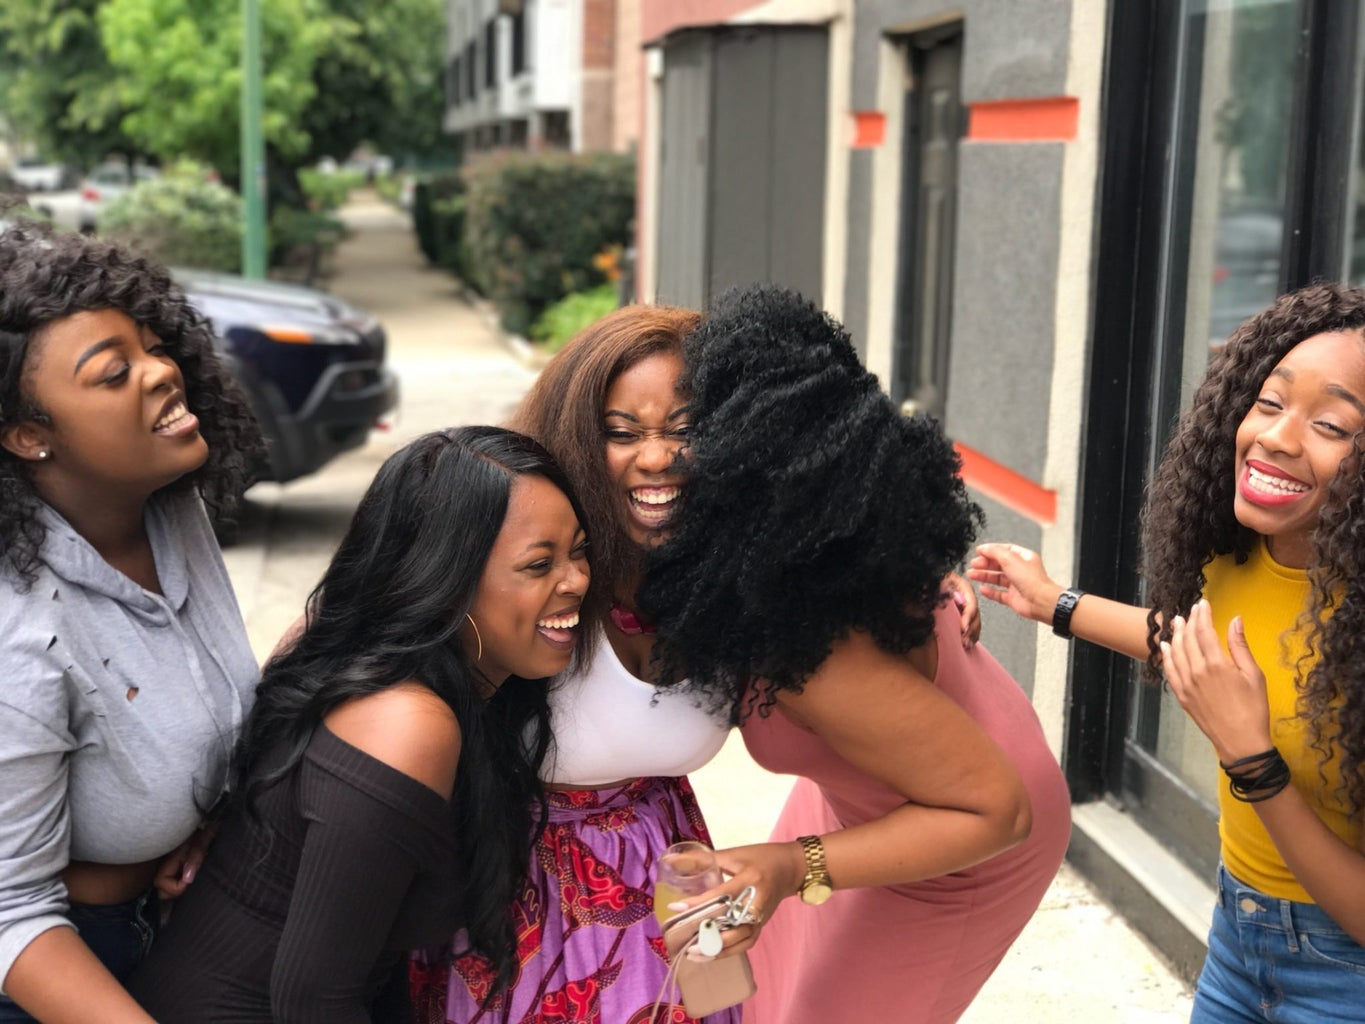 five women laughing together